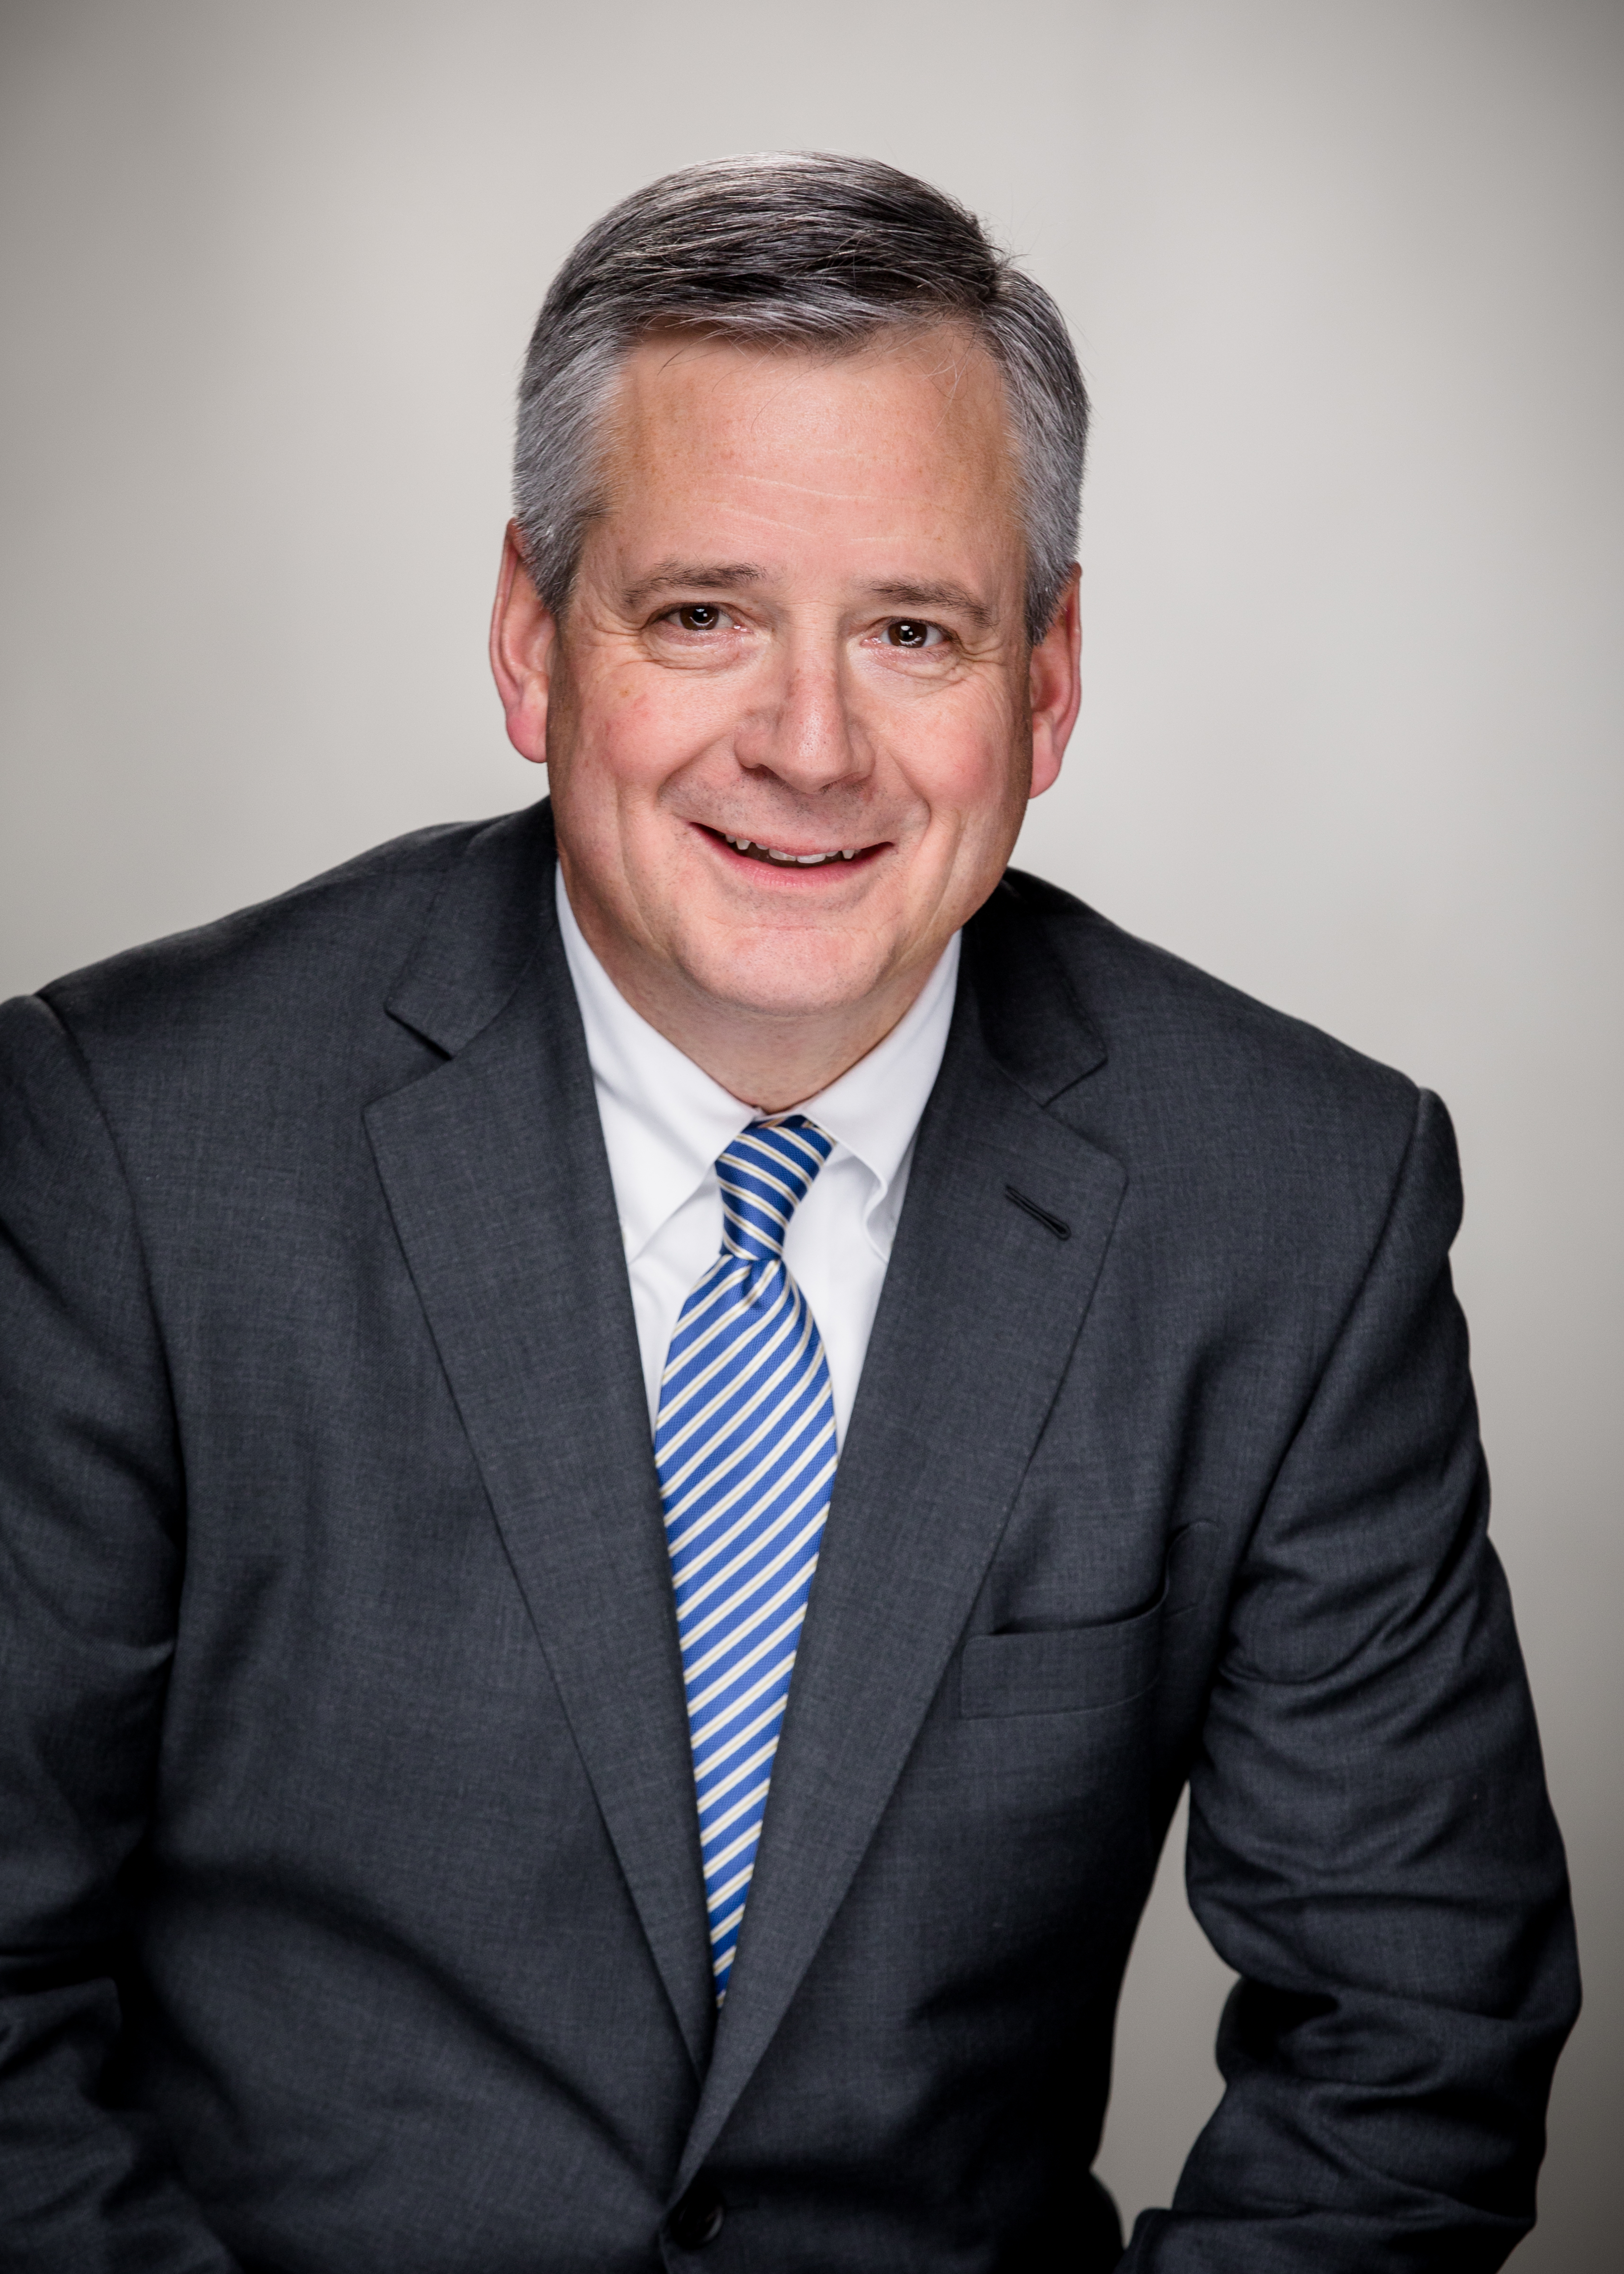 Andrew McDowell promoted to Regional Executive for North Carolina